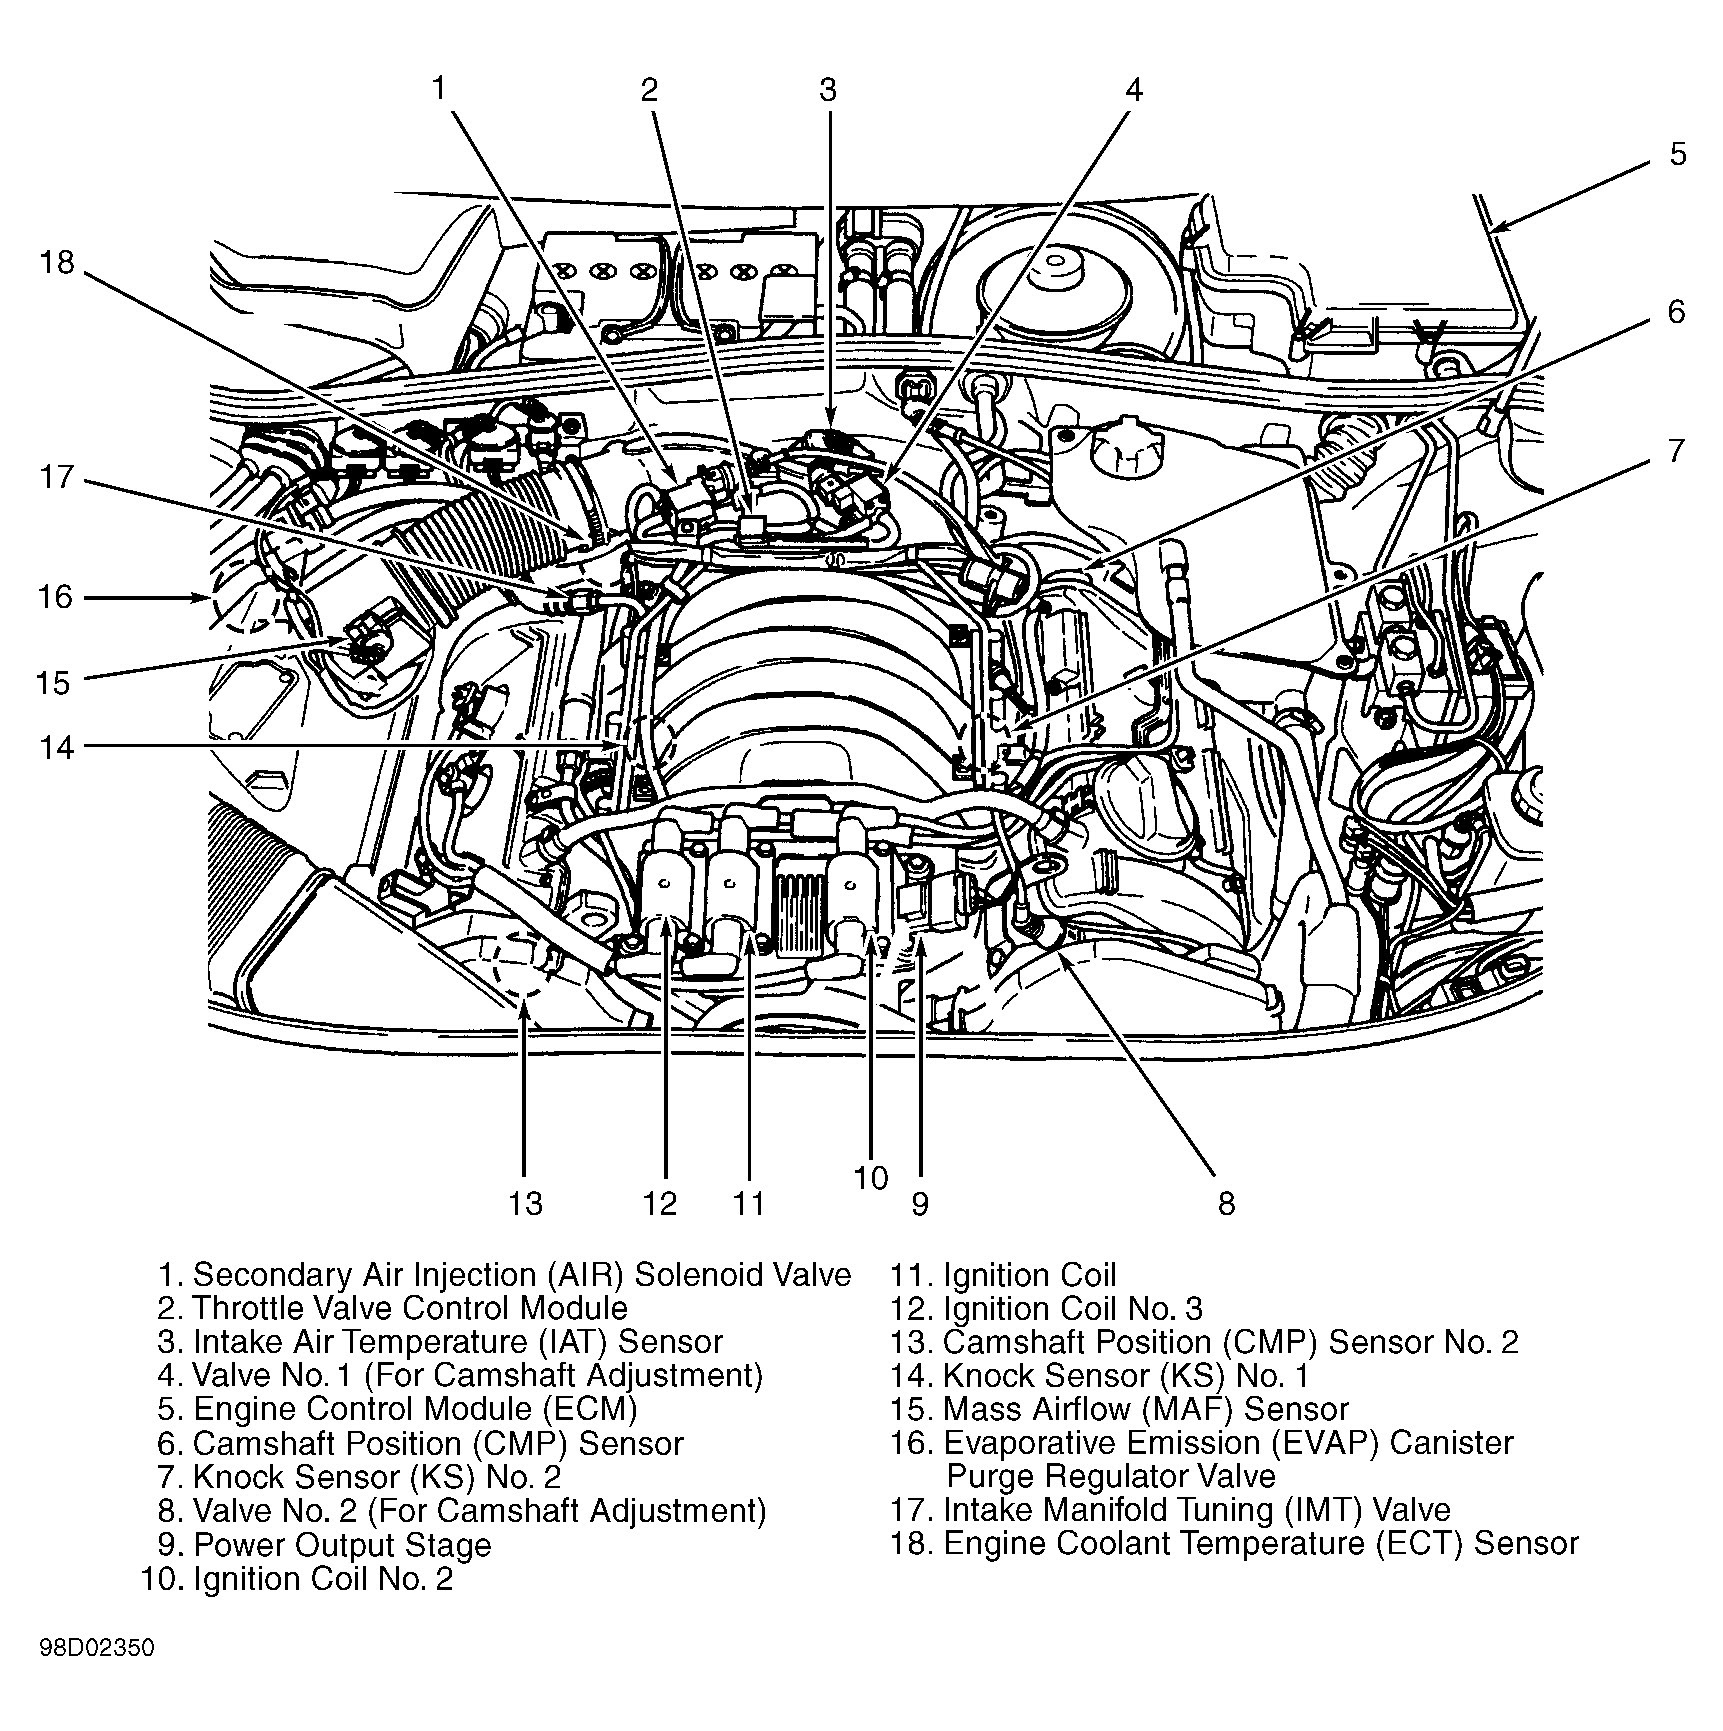 hight resolution of 1998 chrysler cirrus likewise 2007 chrysler sebring 2 4 engine diagram wiring diagram today